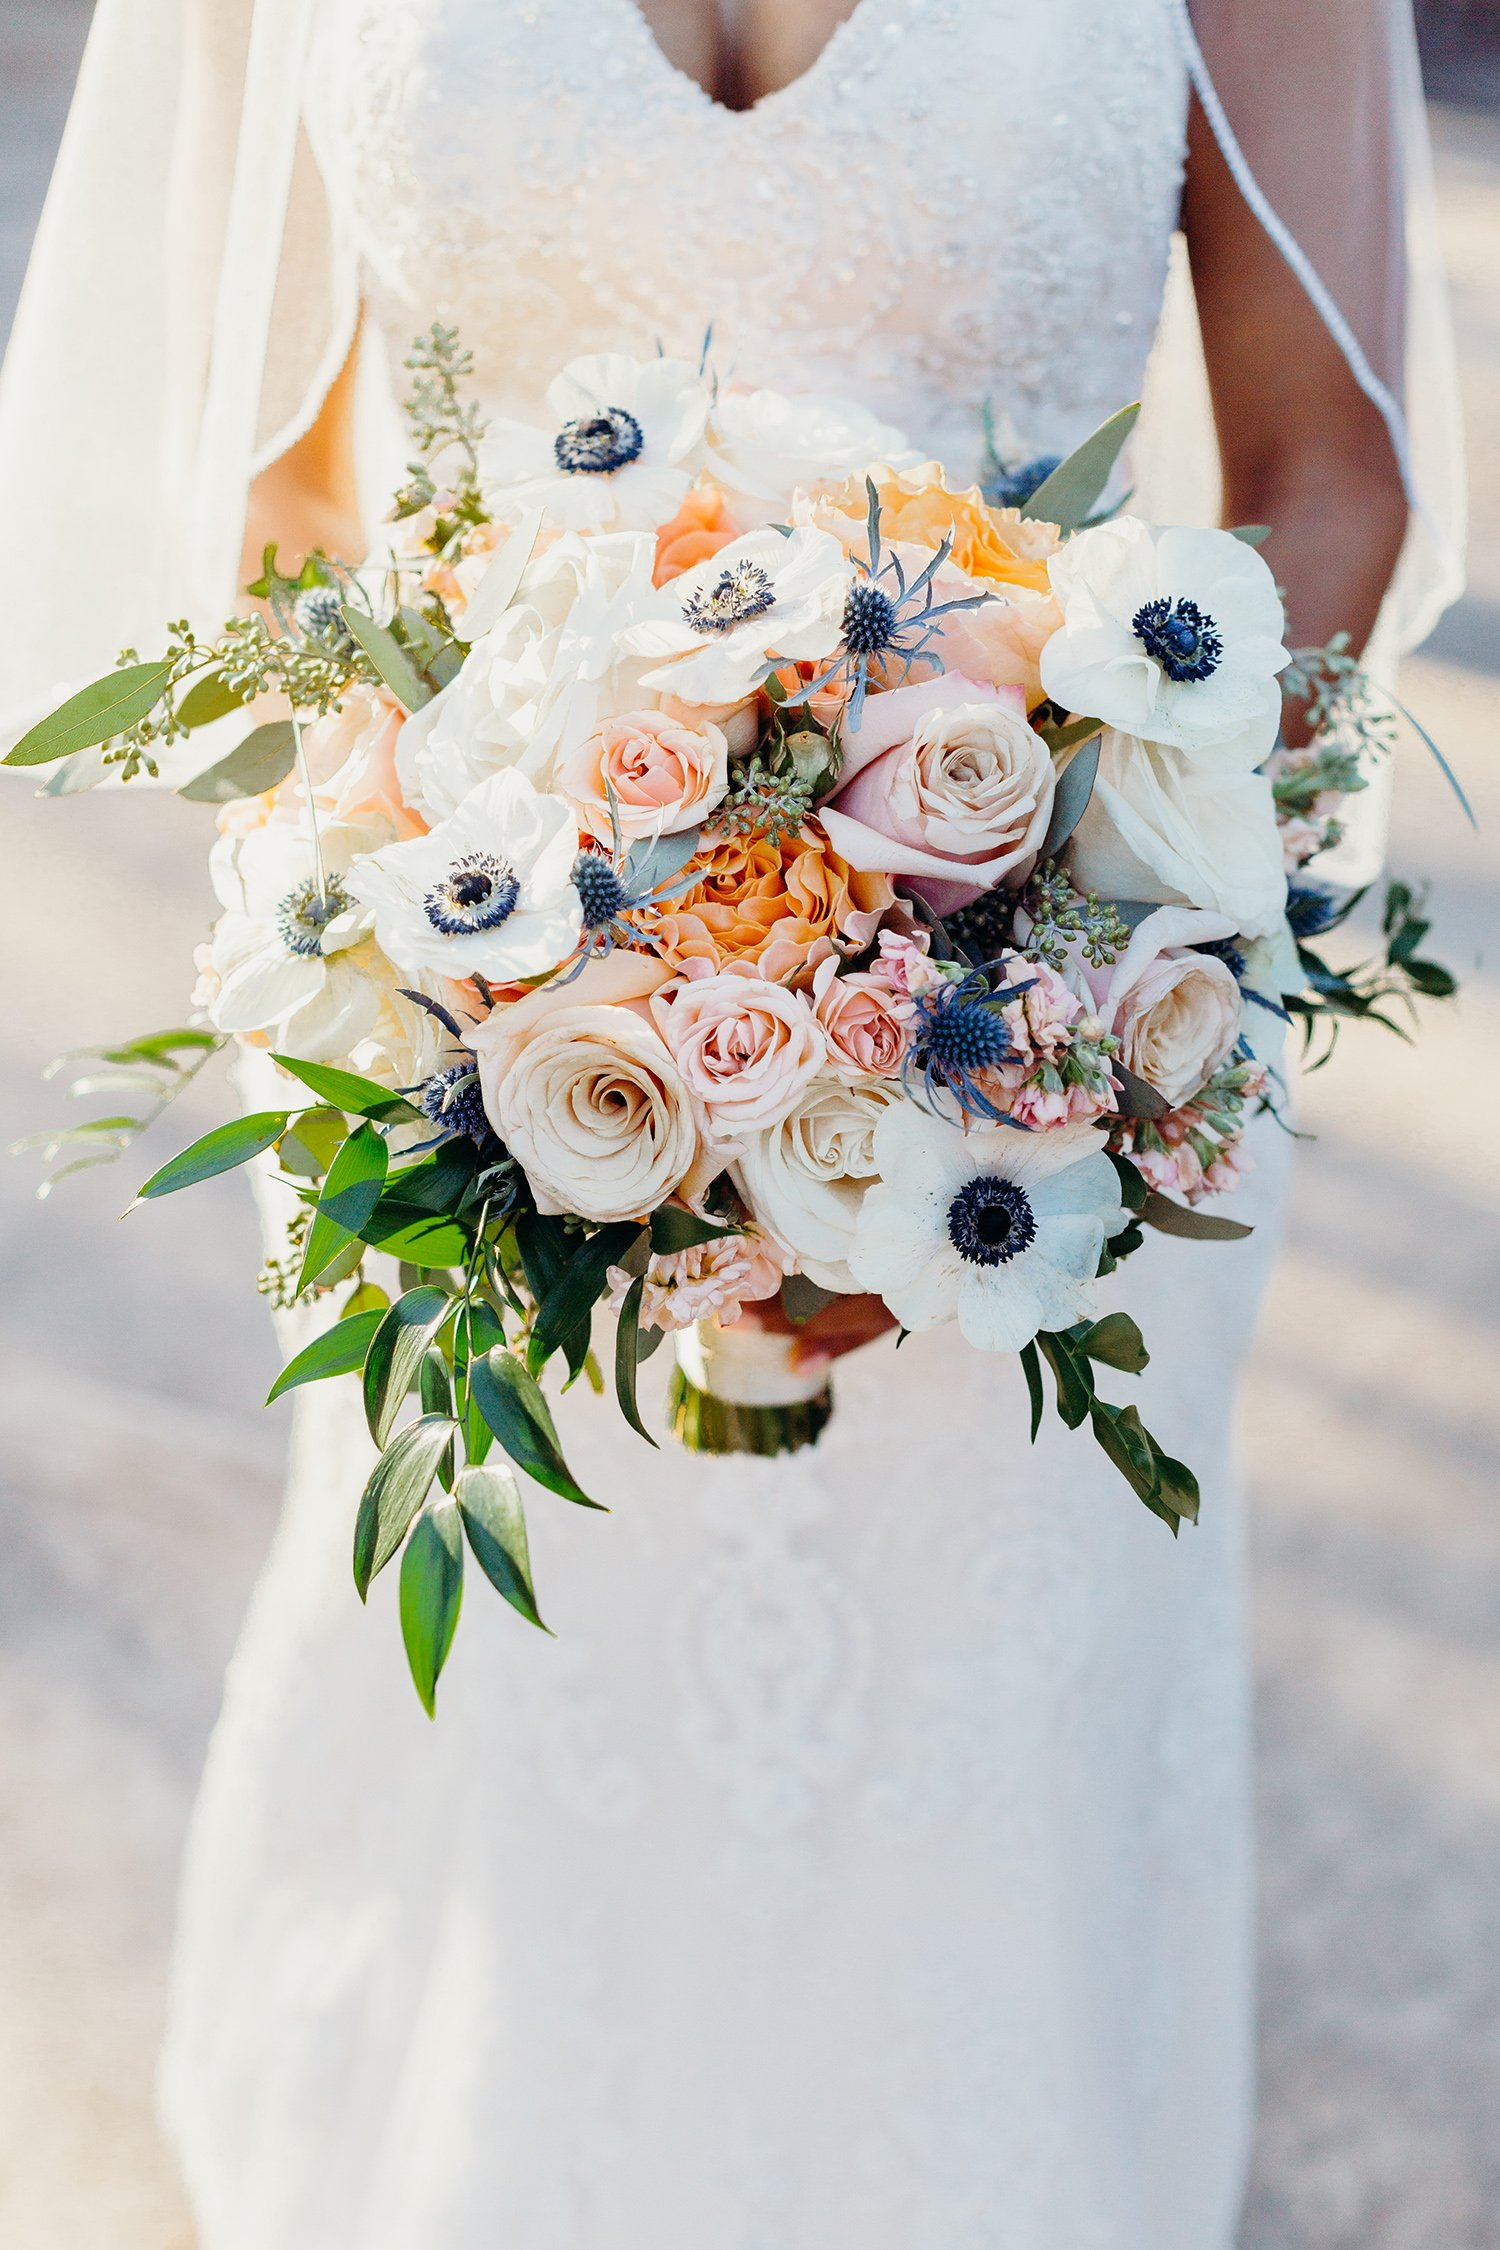 Houston Florist - Bridal Bouquet - Unique - Spring - Chic